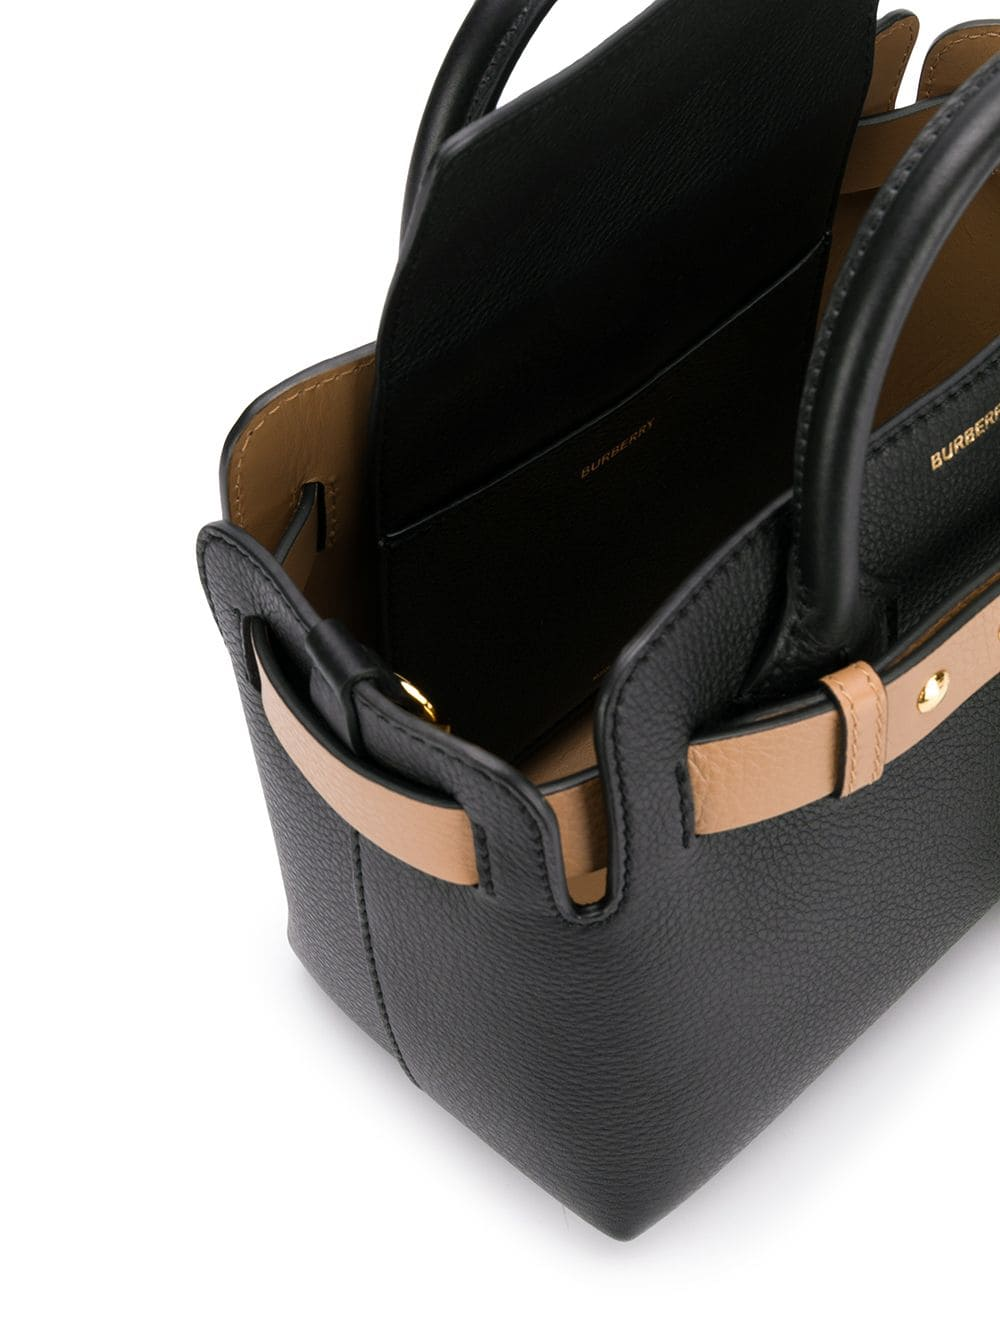 Picture of Burberry | Baby Belt